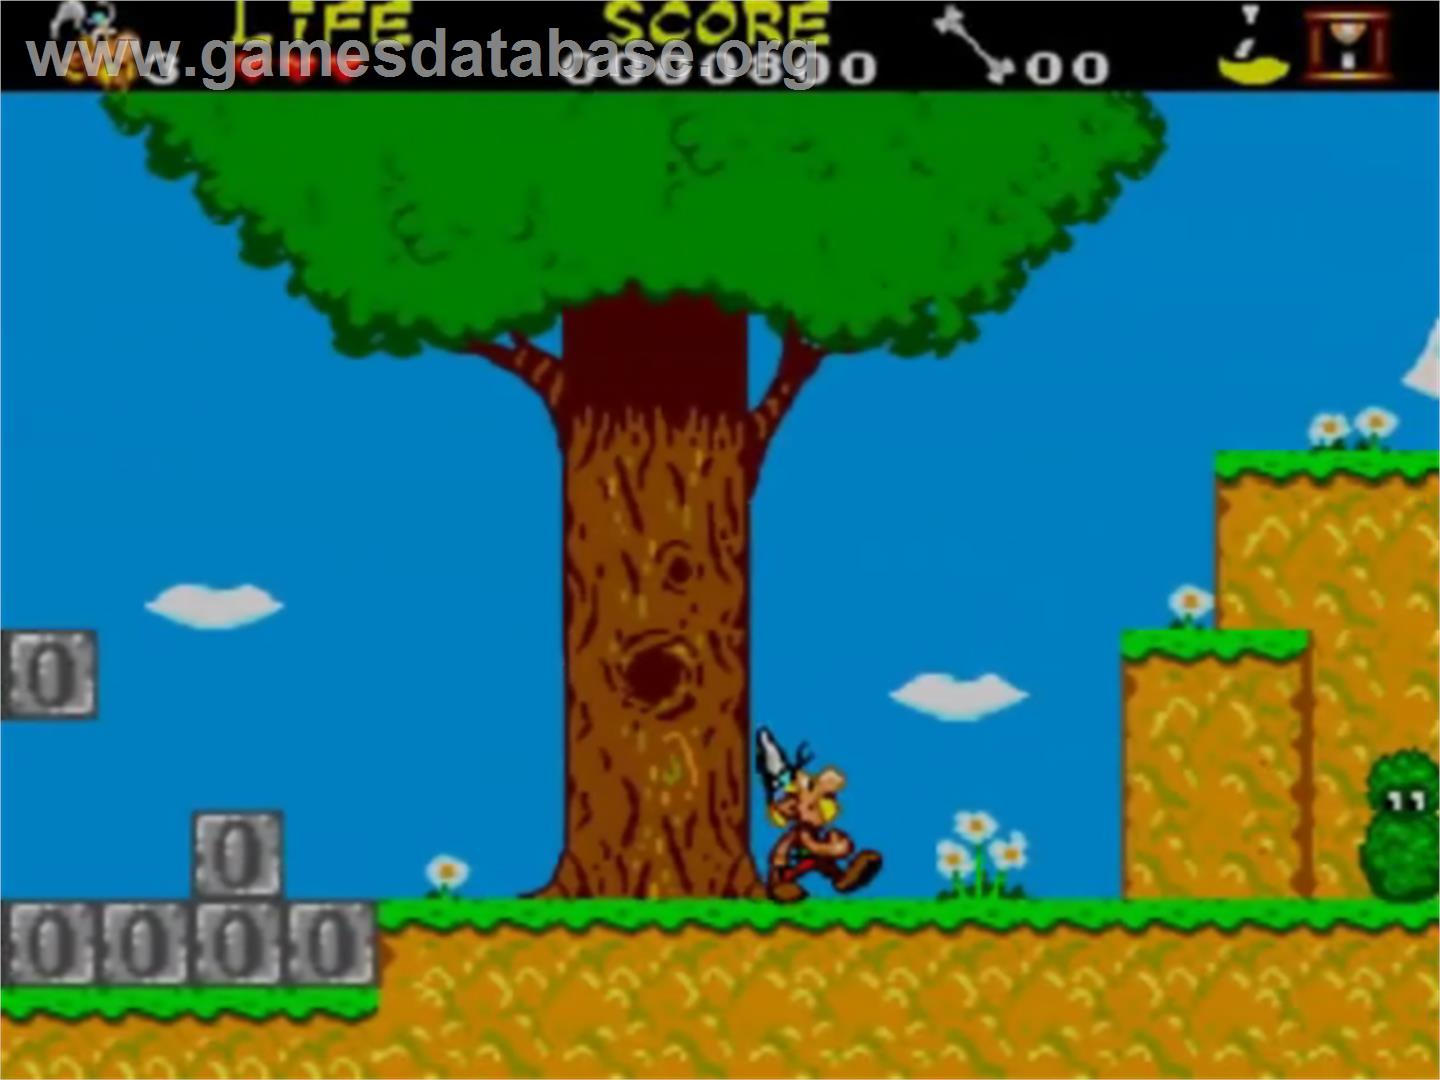 image of Astérix and the Secret Mission on the Sega Master System